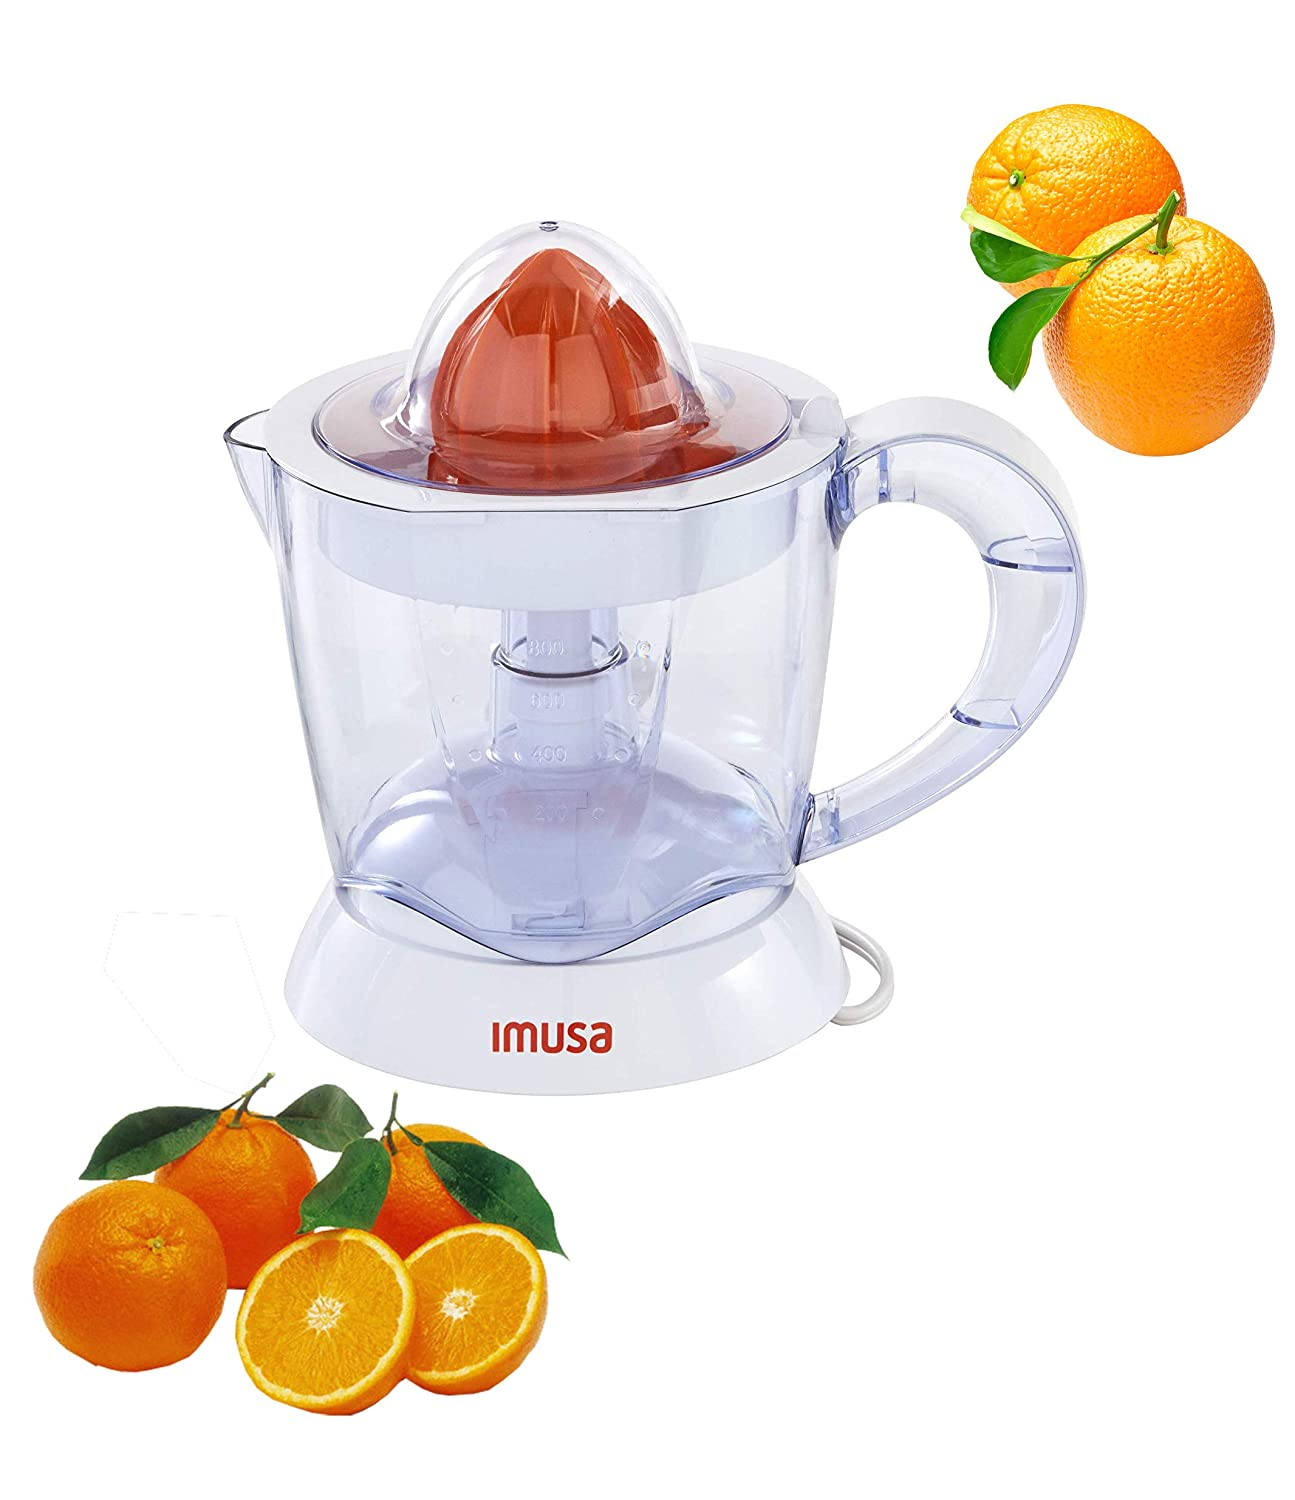 IMUSA USA GAU-80340Electric Citrus Juicer 40-Watts, White